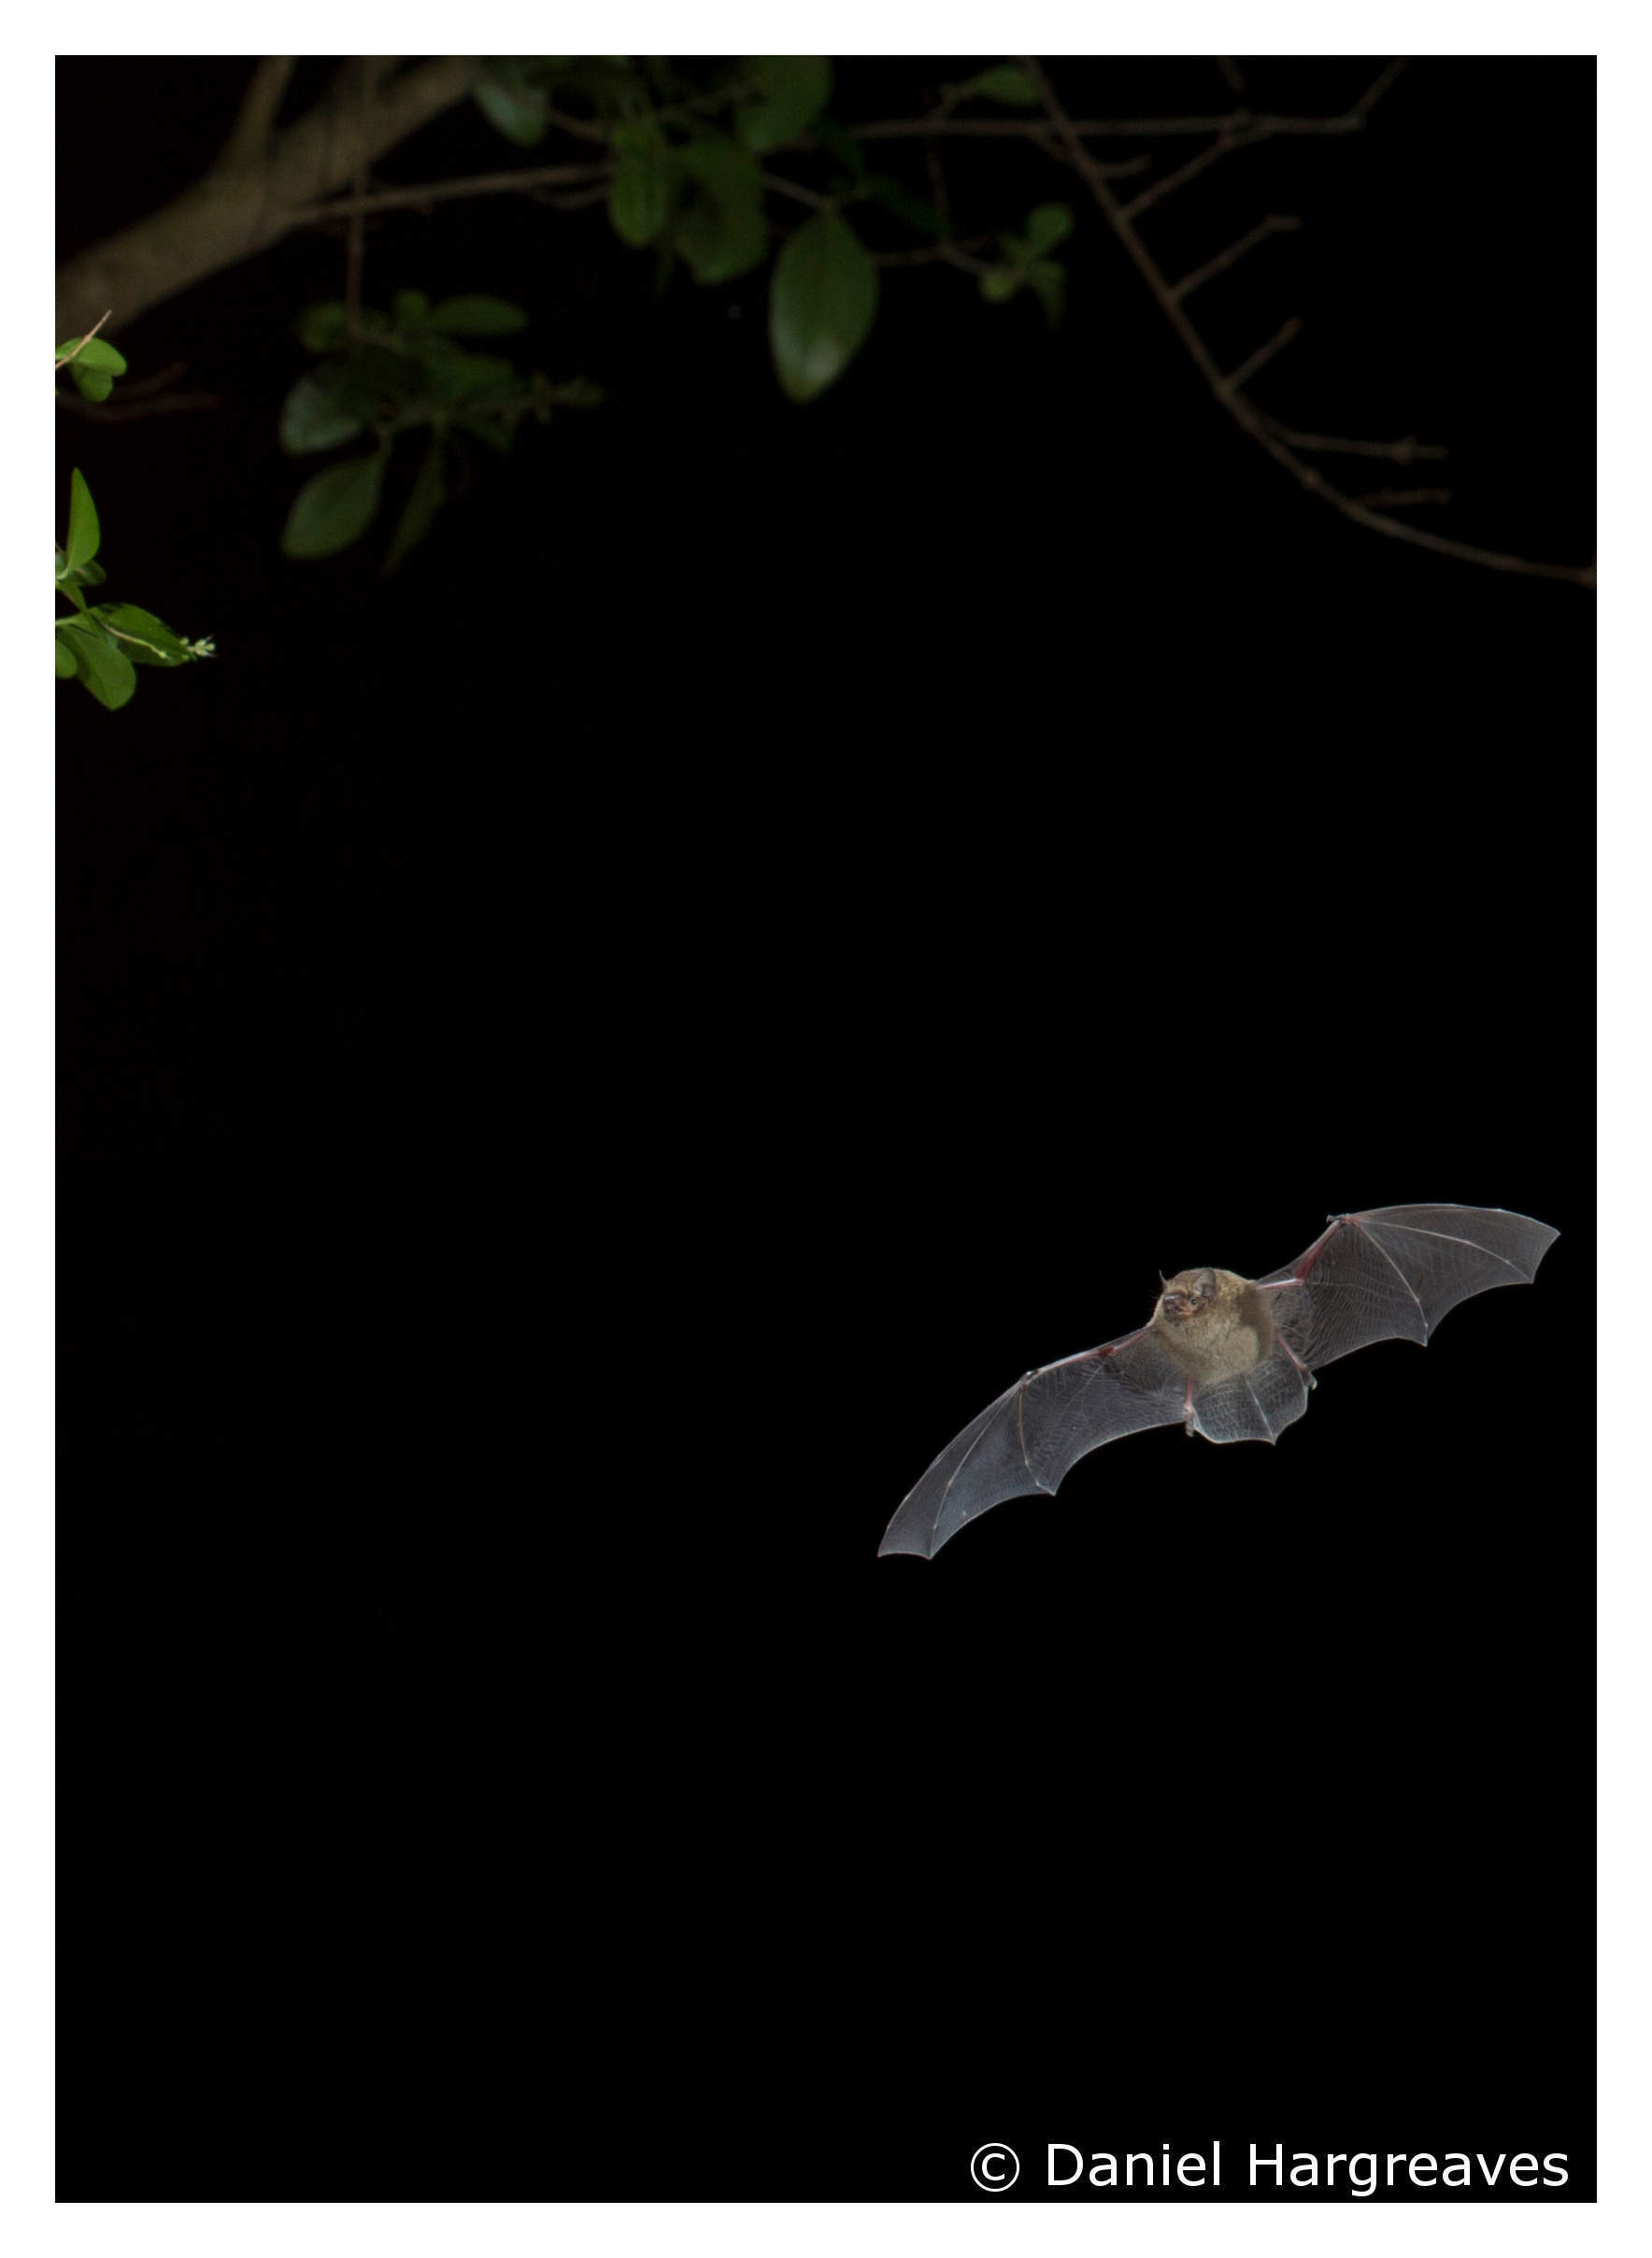 Facts About Bats & COVID-19